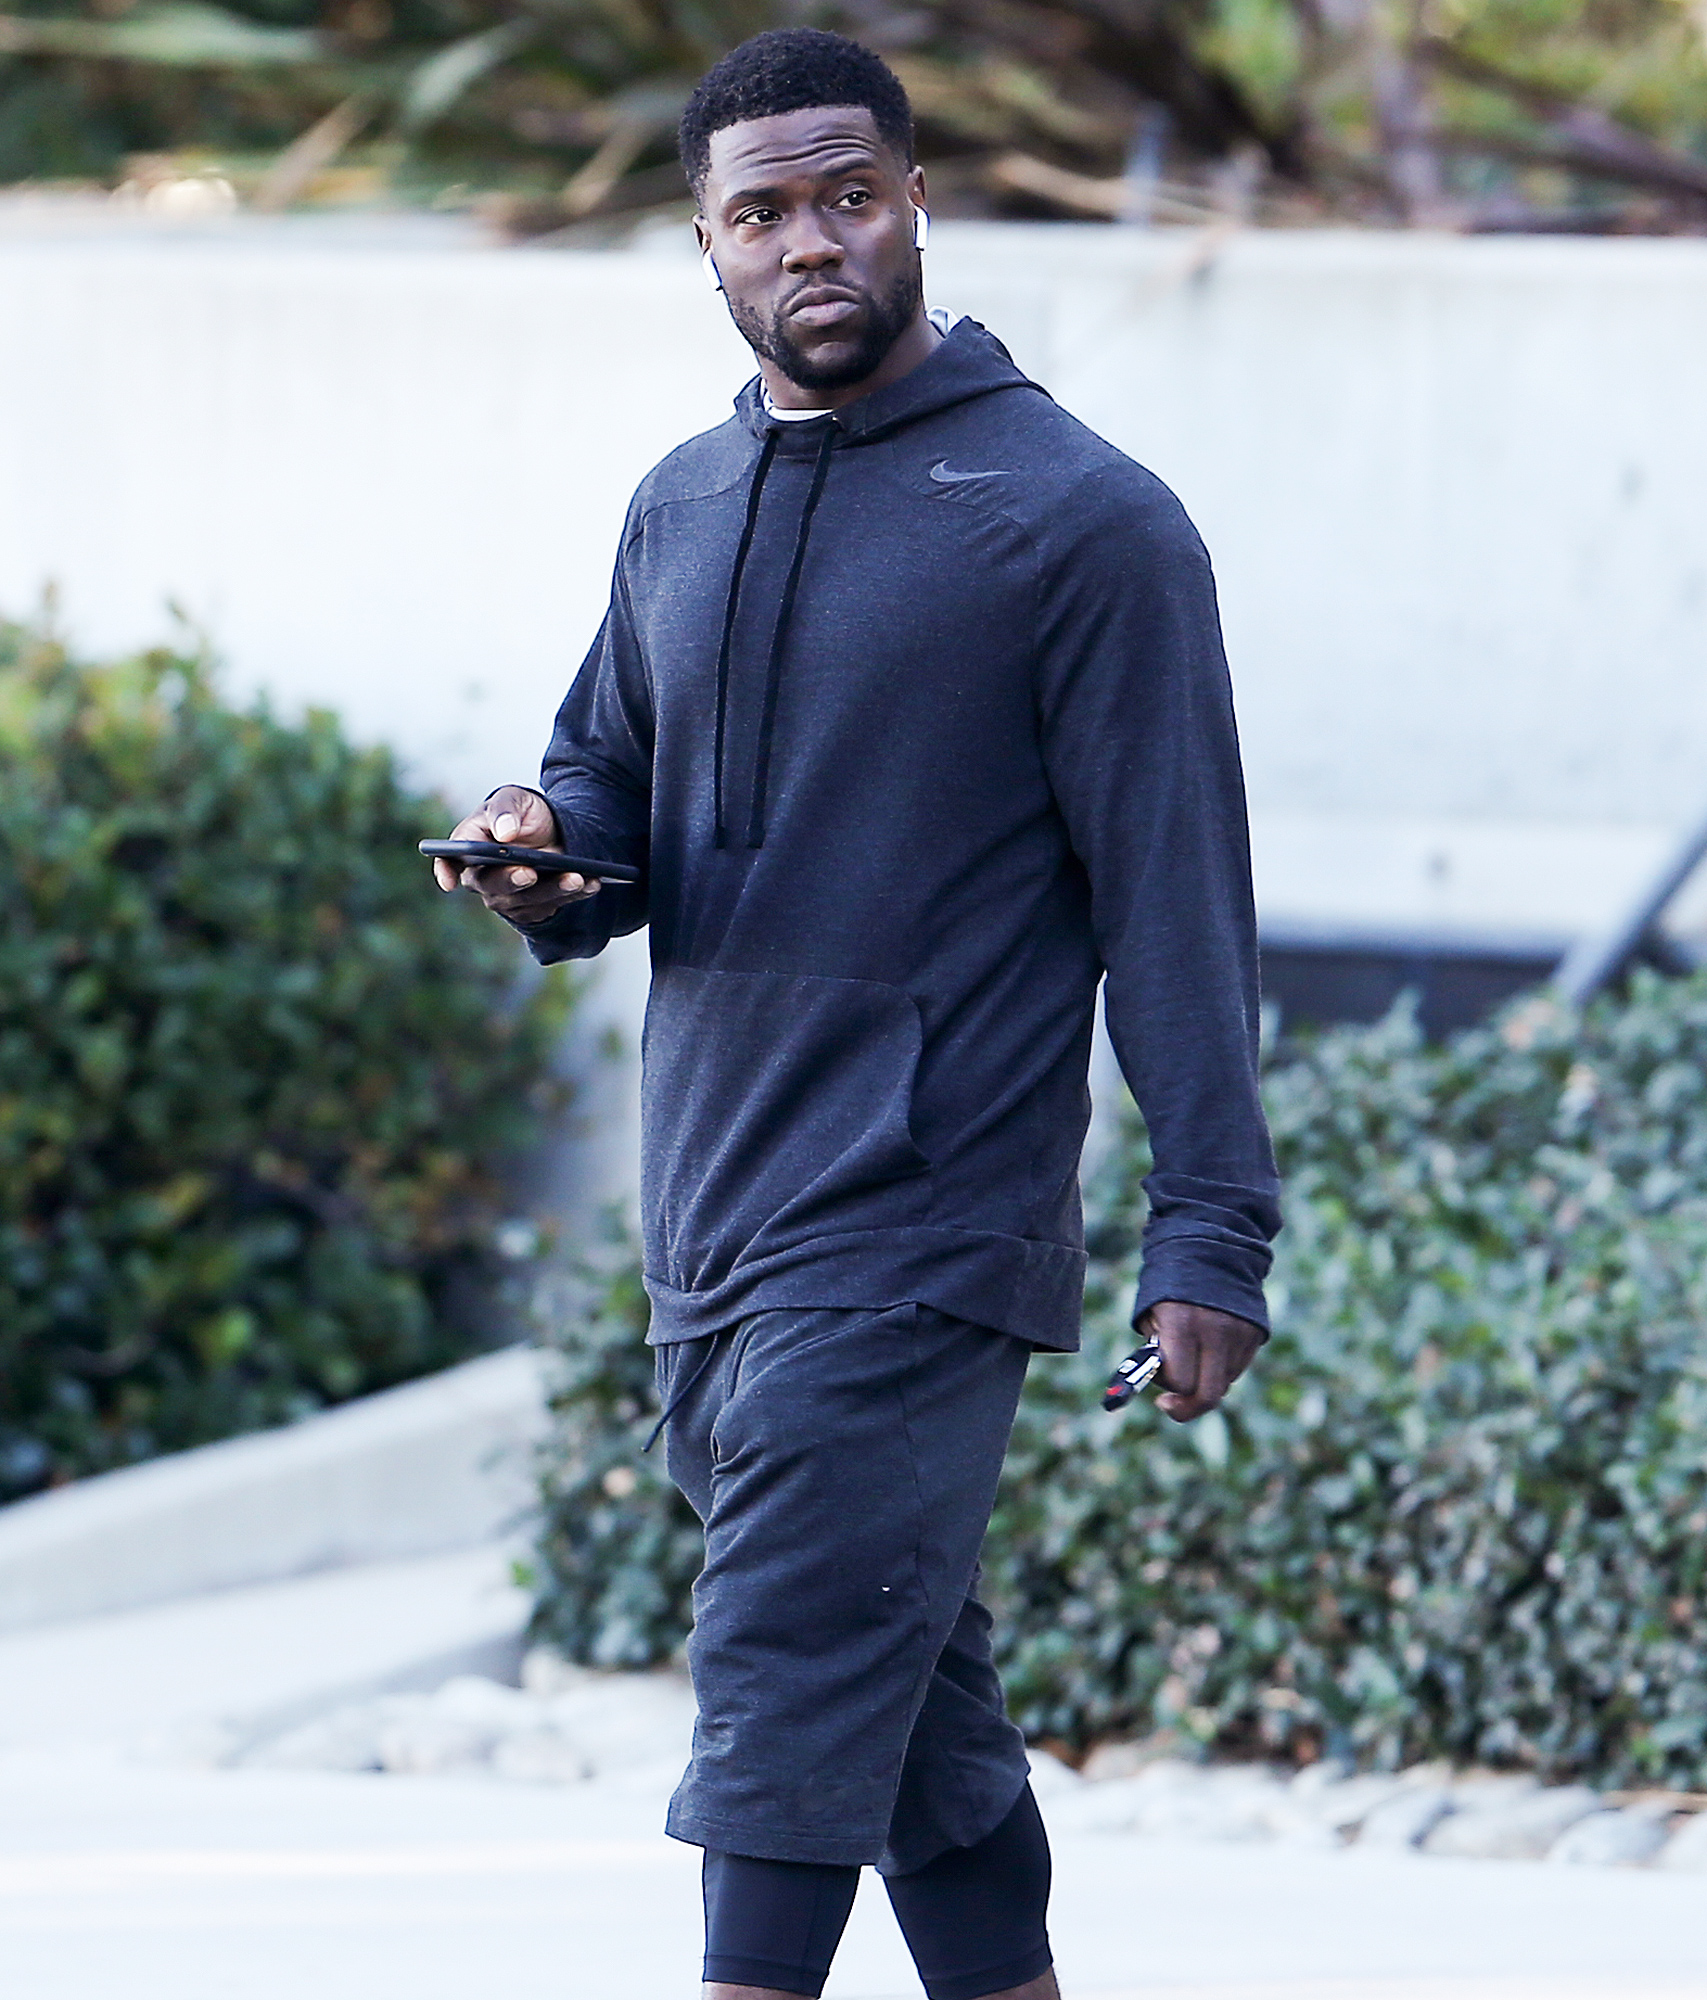 EXCLUSIVE: Kevin Hart gets a parking ticket in his $220,000 Mercedes-Benz AMG G 65 as he works out at the gym